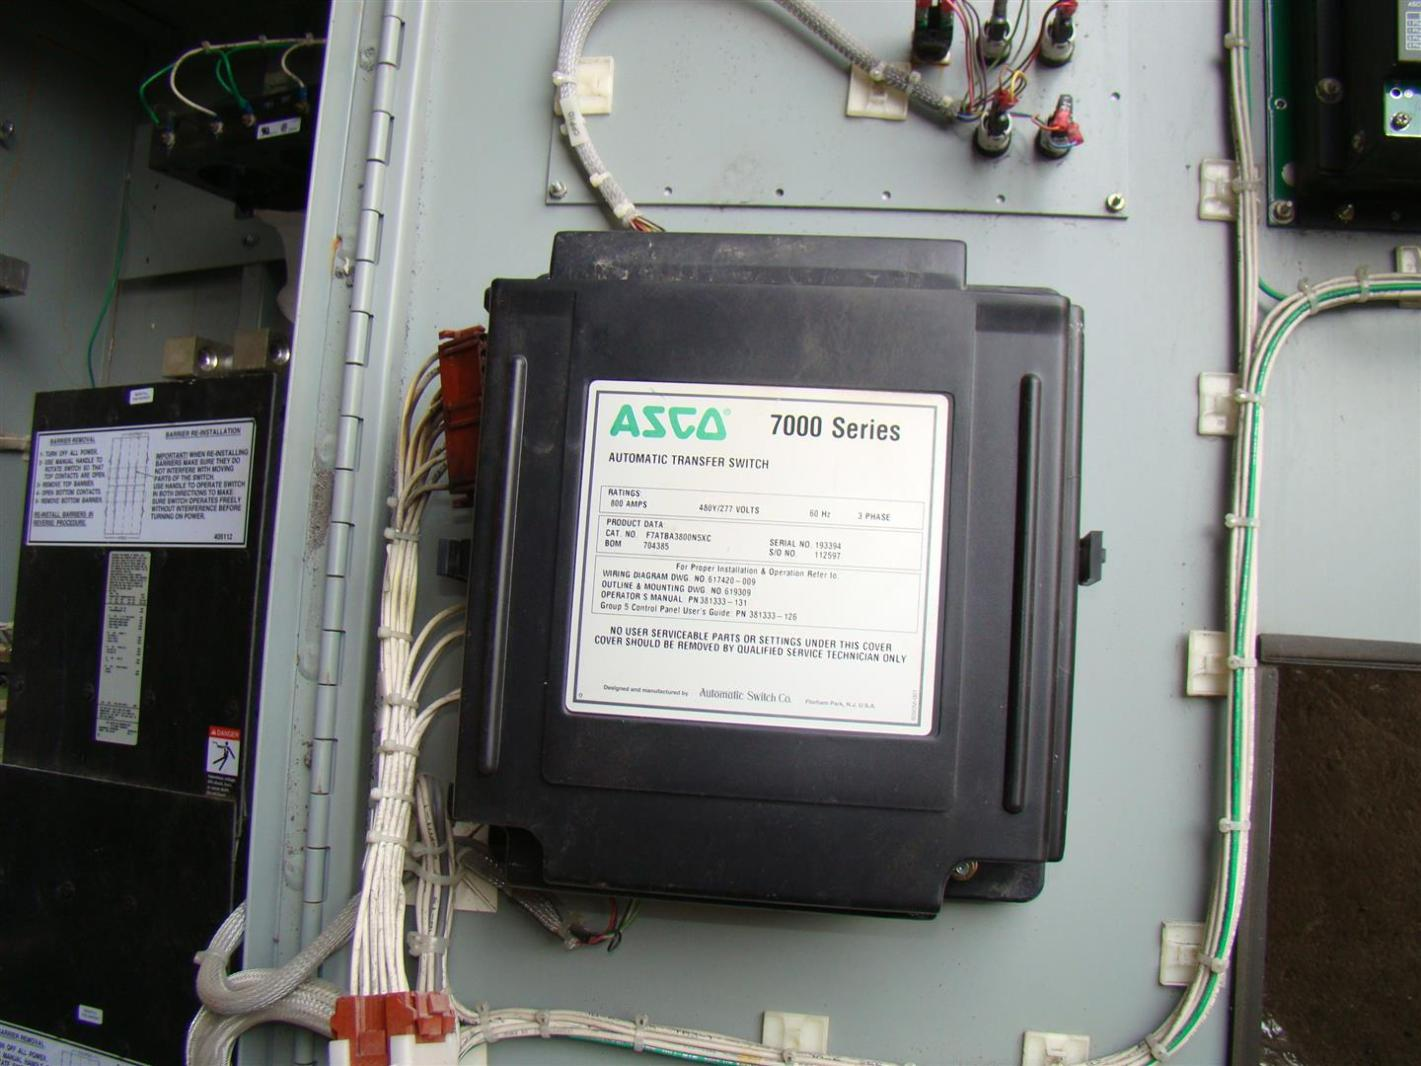 Asco 7000 Series Ats Wiring Diagram 35 Images 185 Transfer Switch Schematic 10678 800a 480y 277v 3o Automatic Bypass Isolation F7atba3800n5xc 9